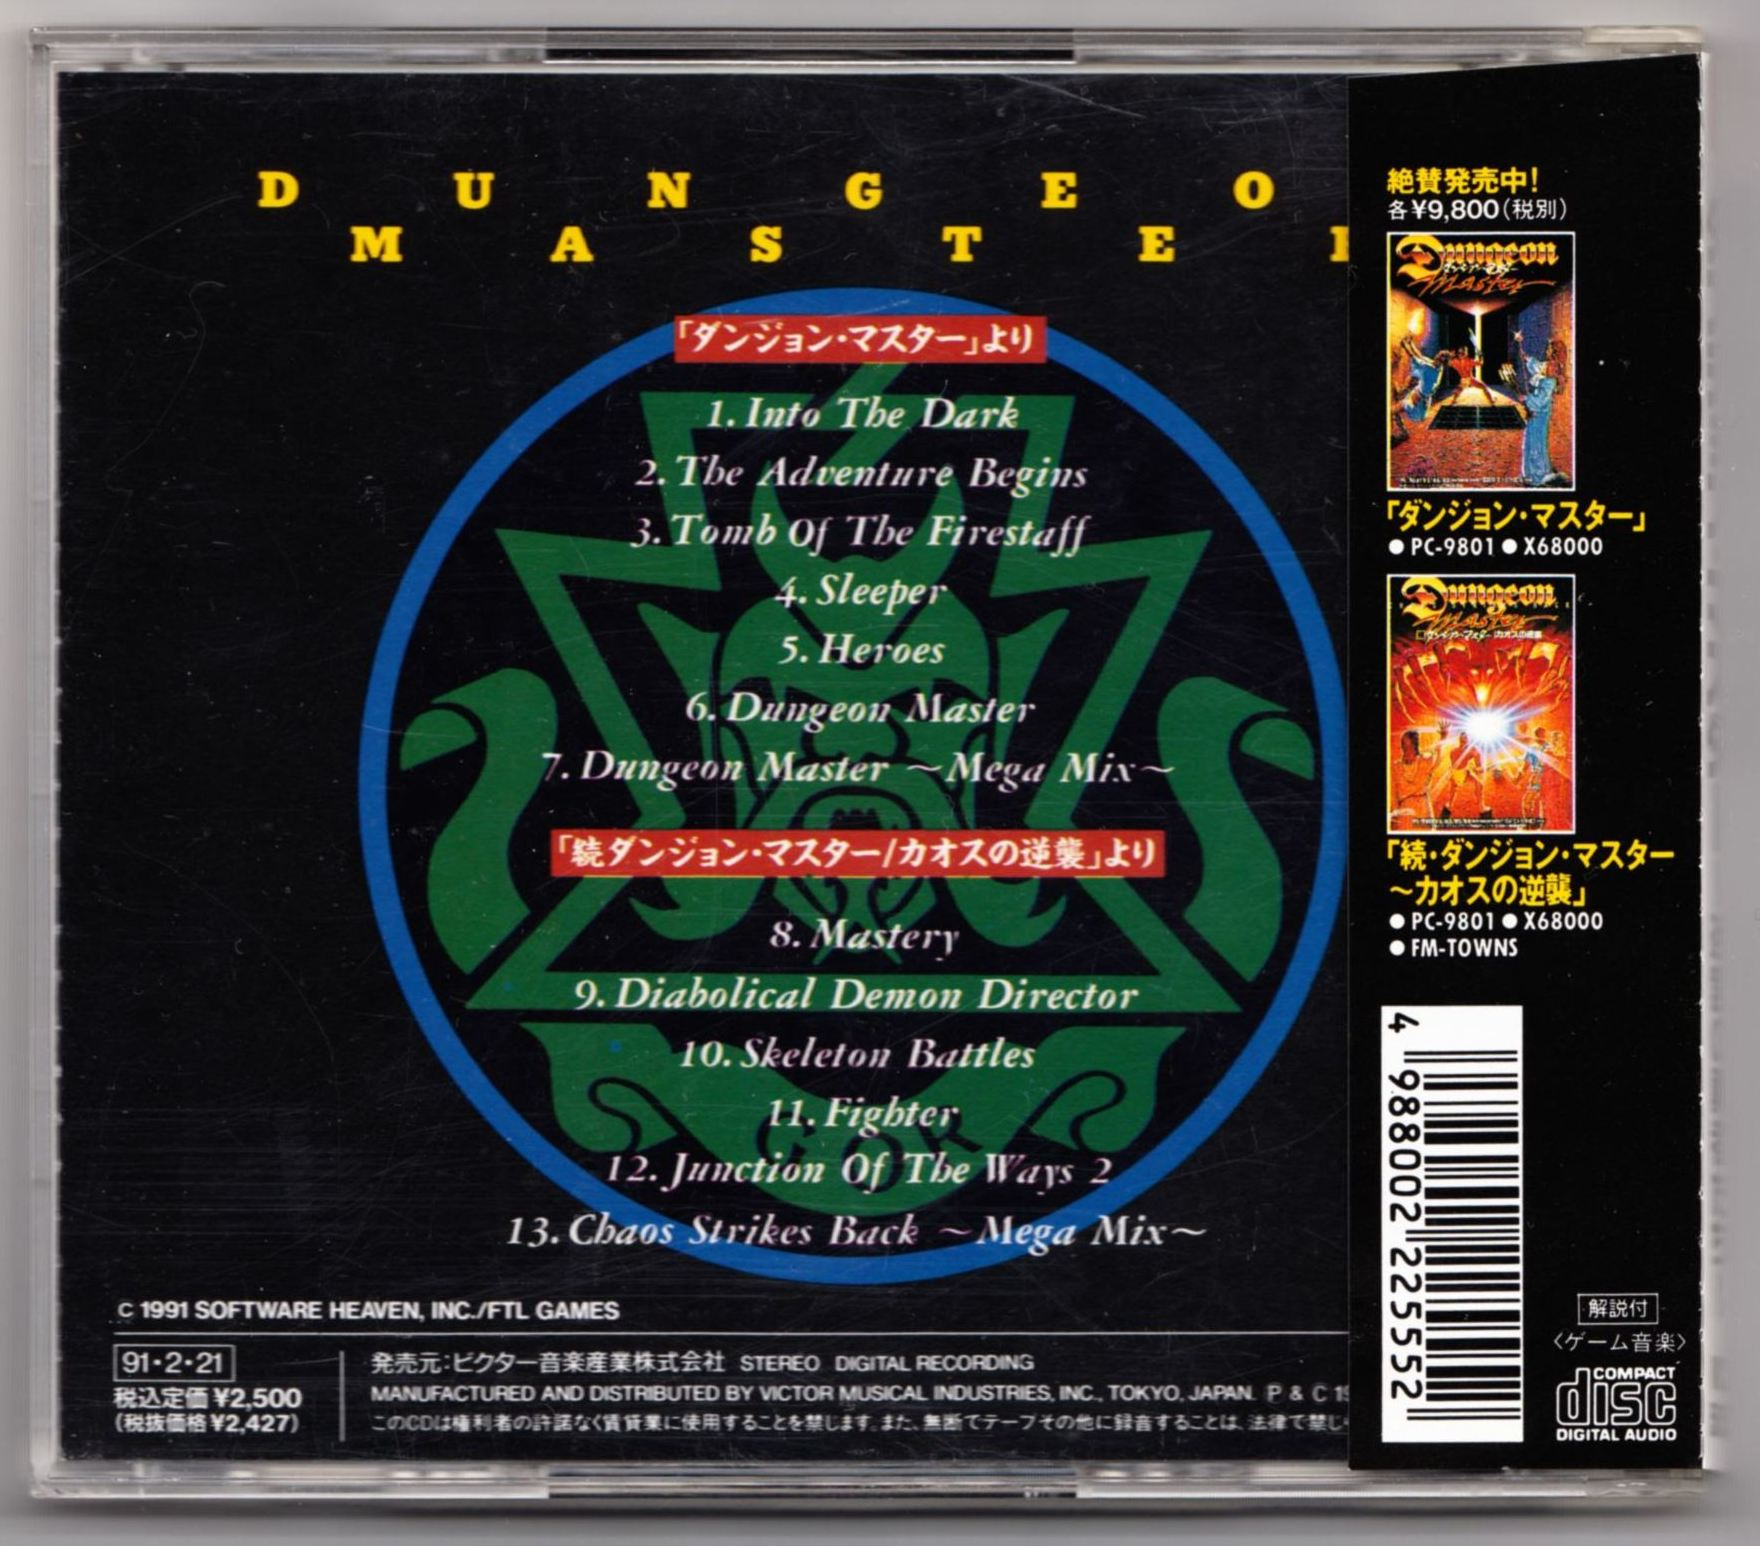 Audio CD - Warriors Of The Labyrinth - JP - Box - Back - Scan